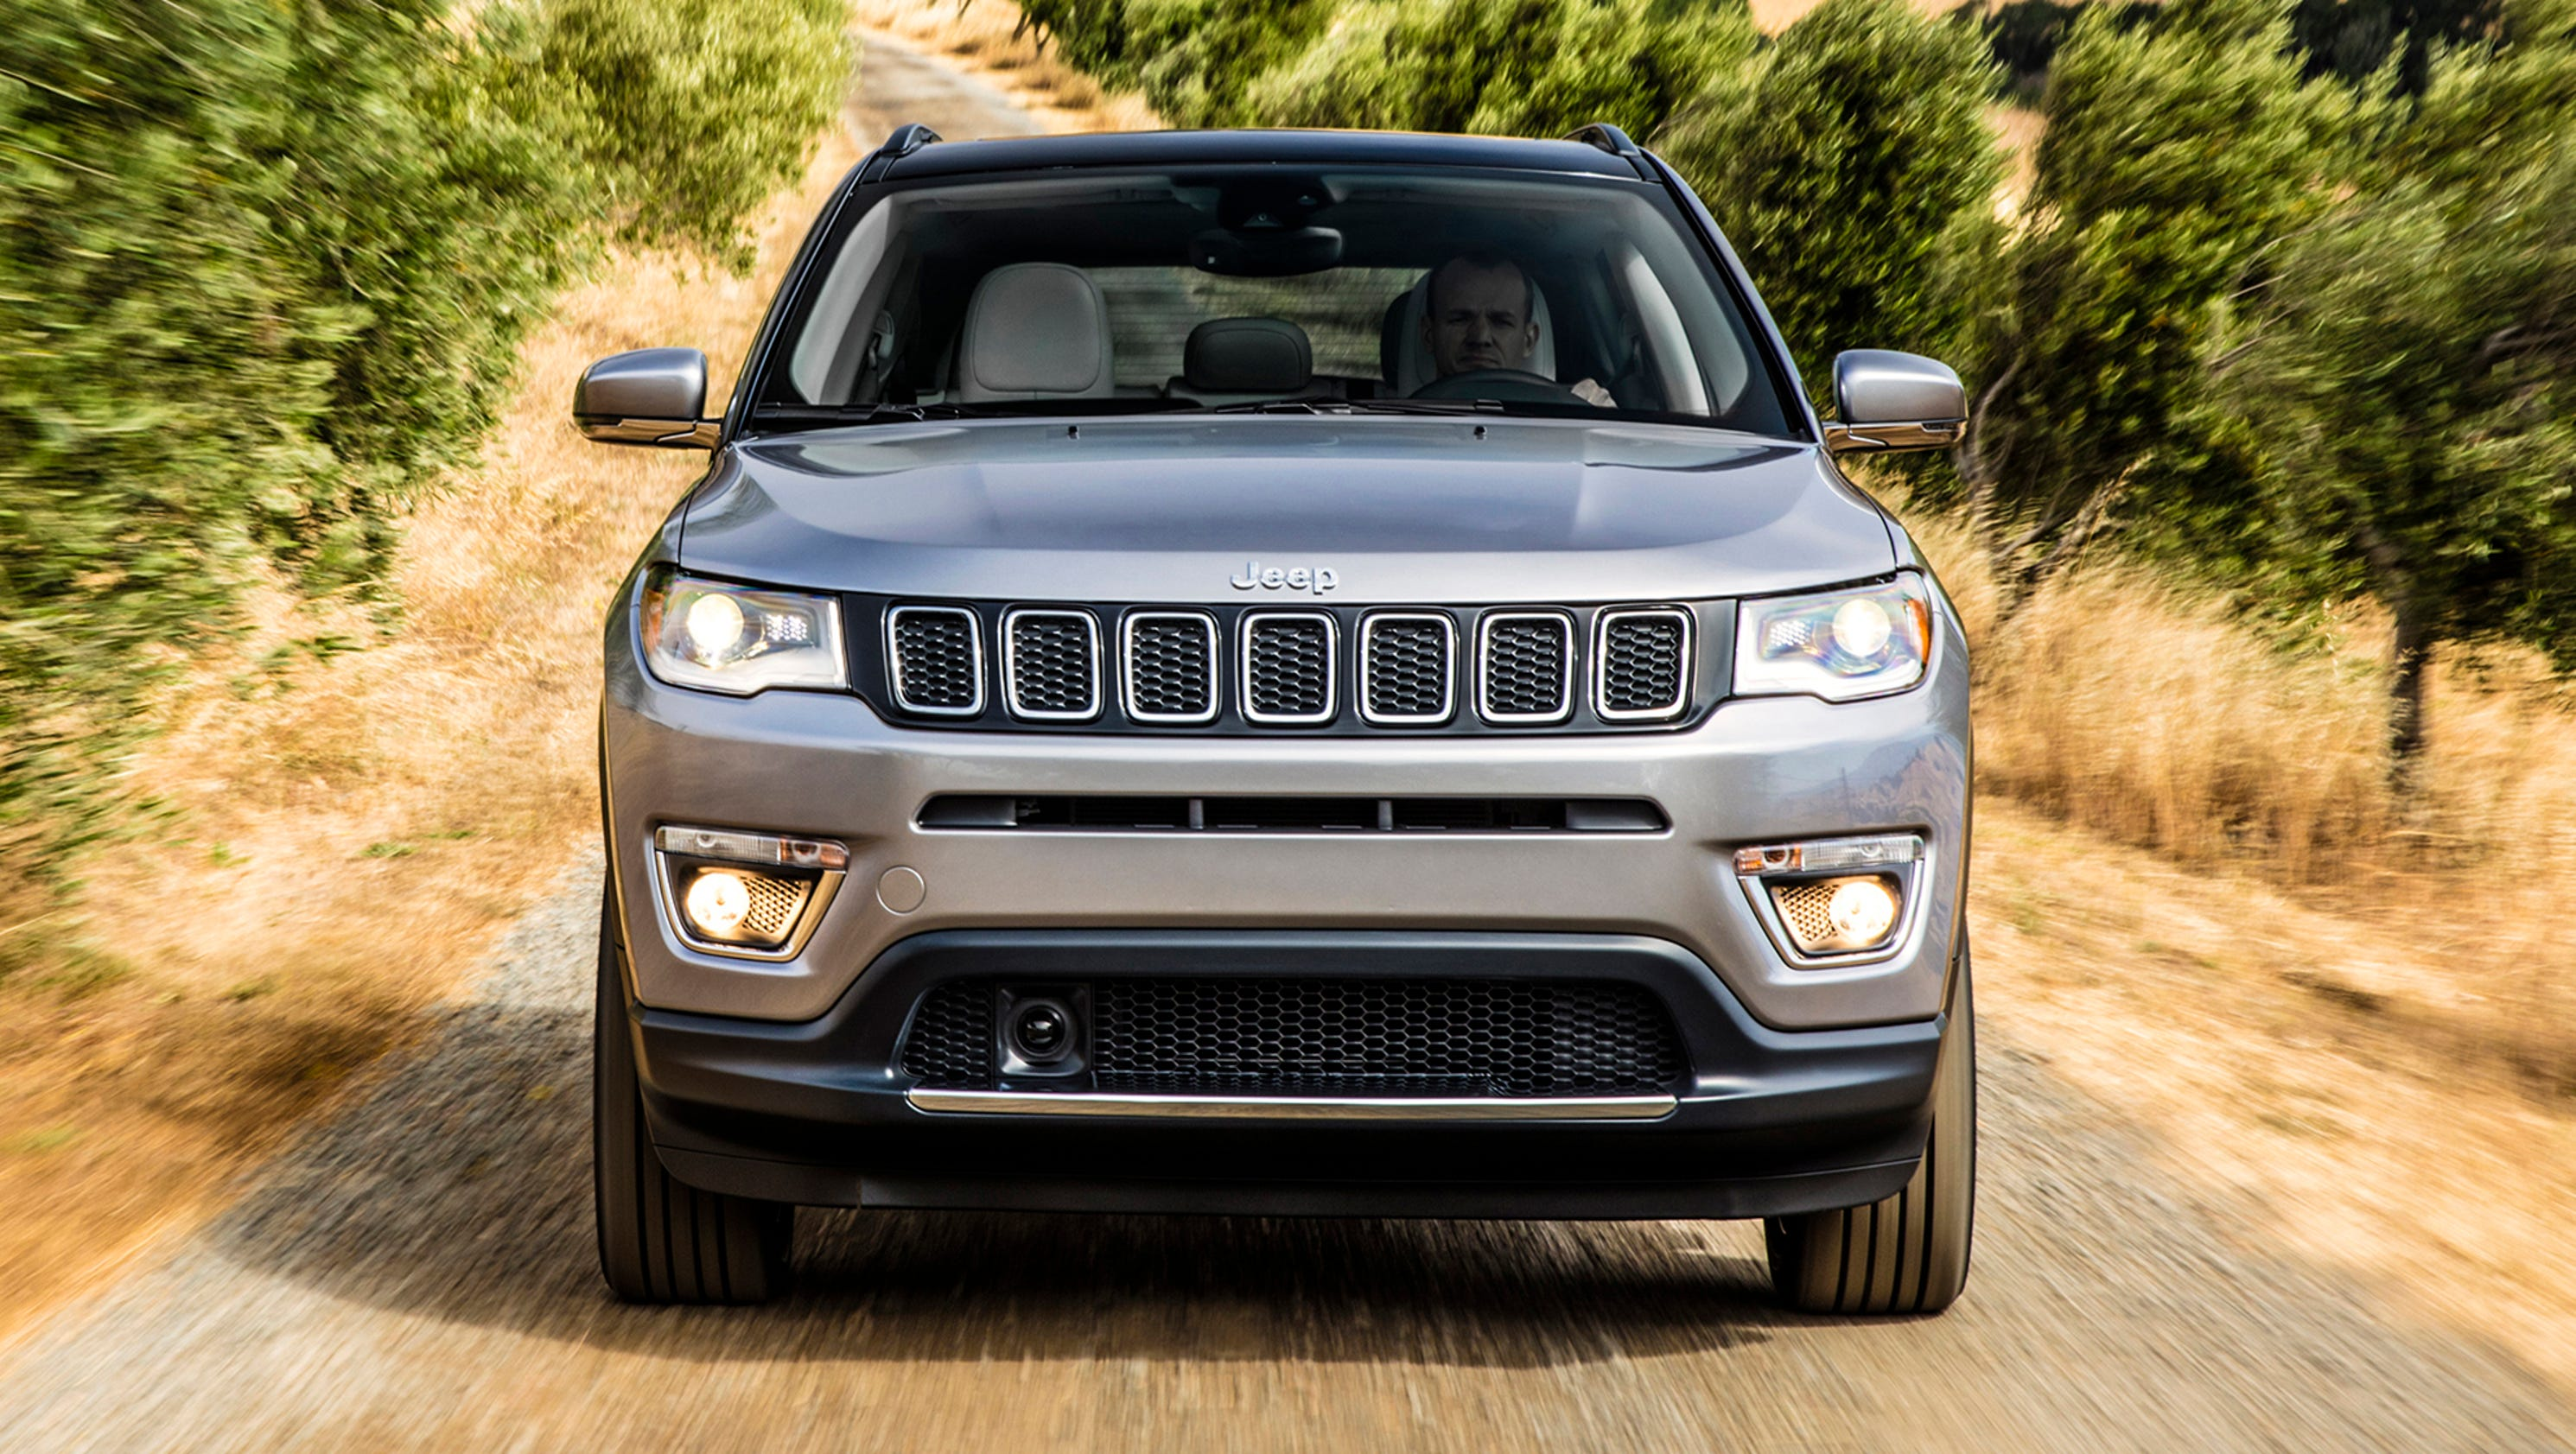 photos 2017 jeep compass. Black Bedroom Furniture Sets. Home Design Ideas